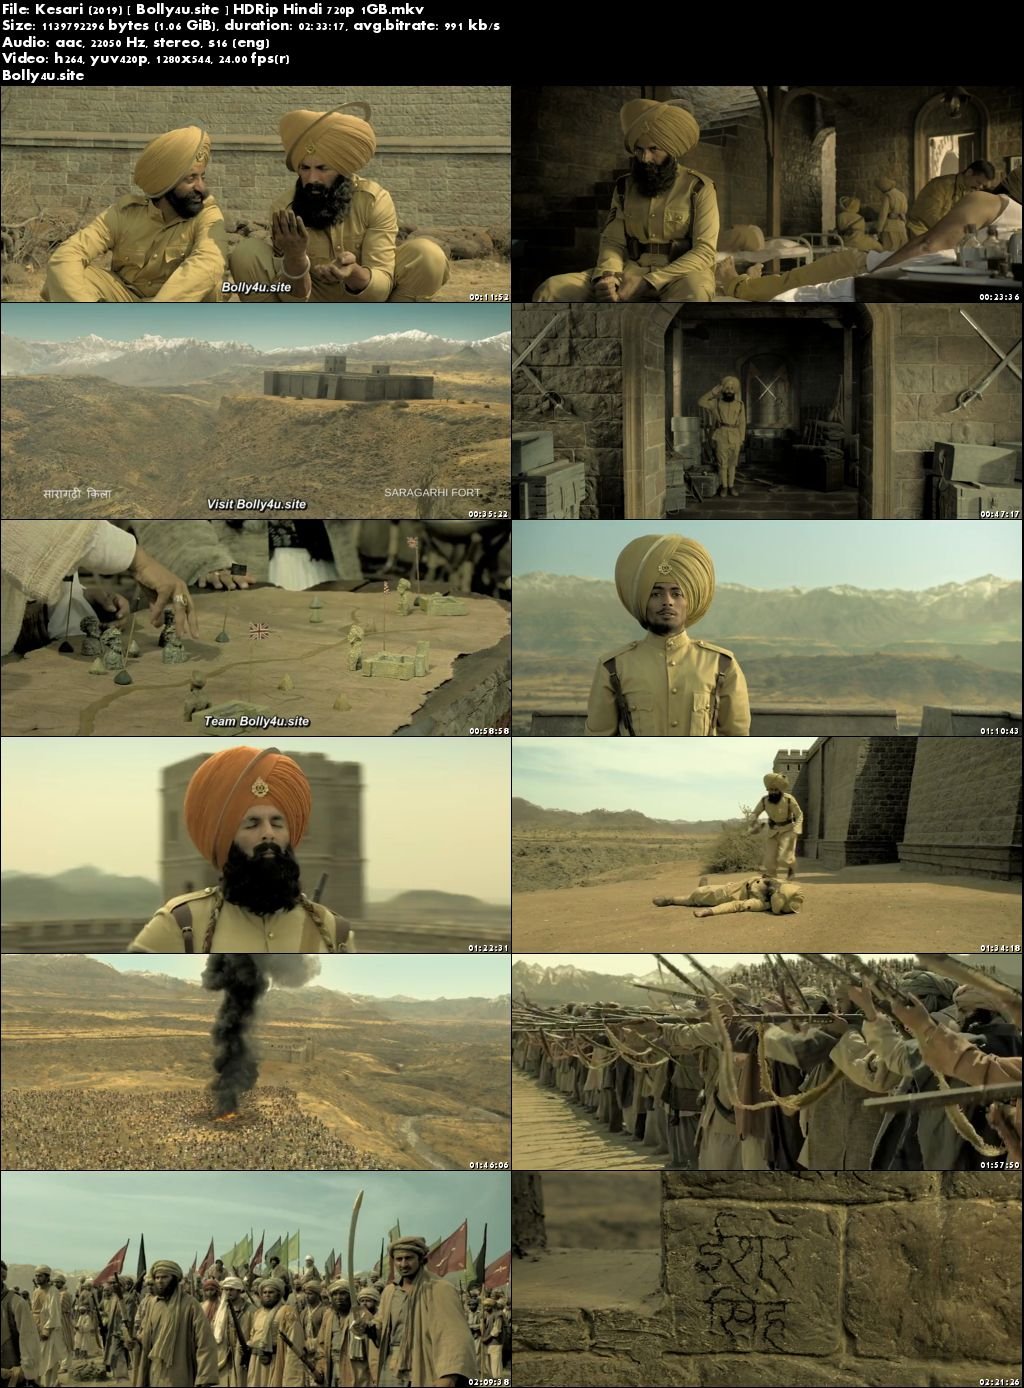 Kesari 2019 HDRip 450MB Full Hindi Movie Download 480p